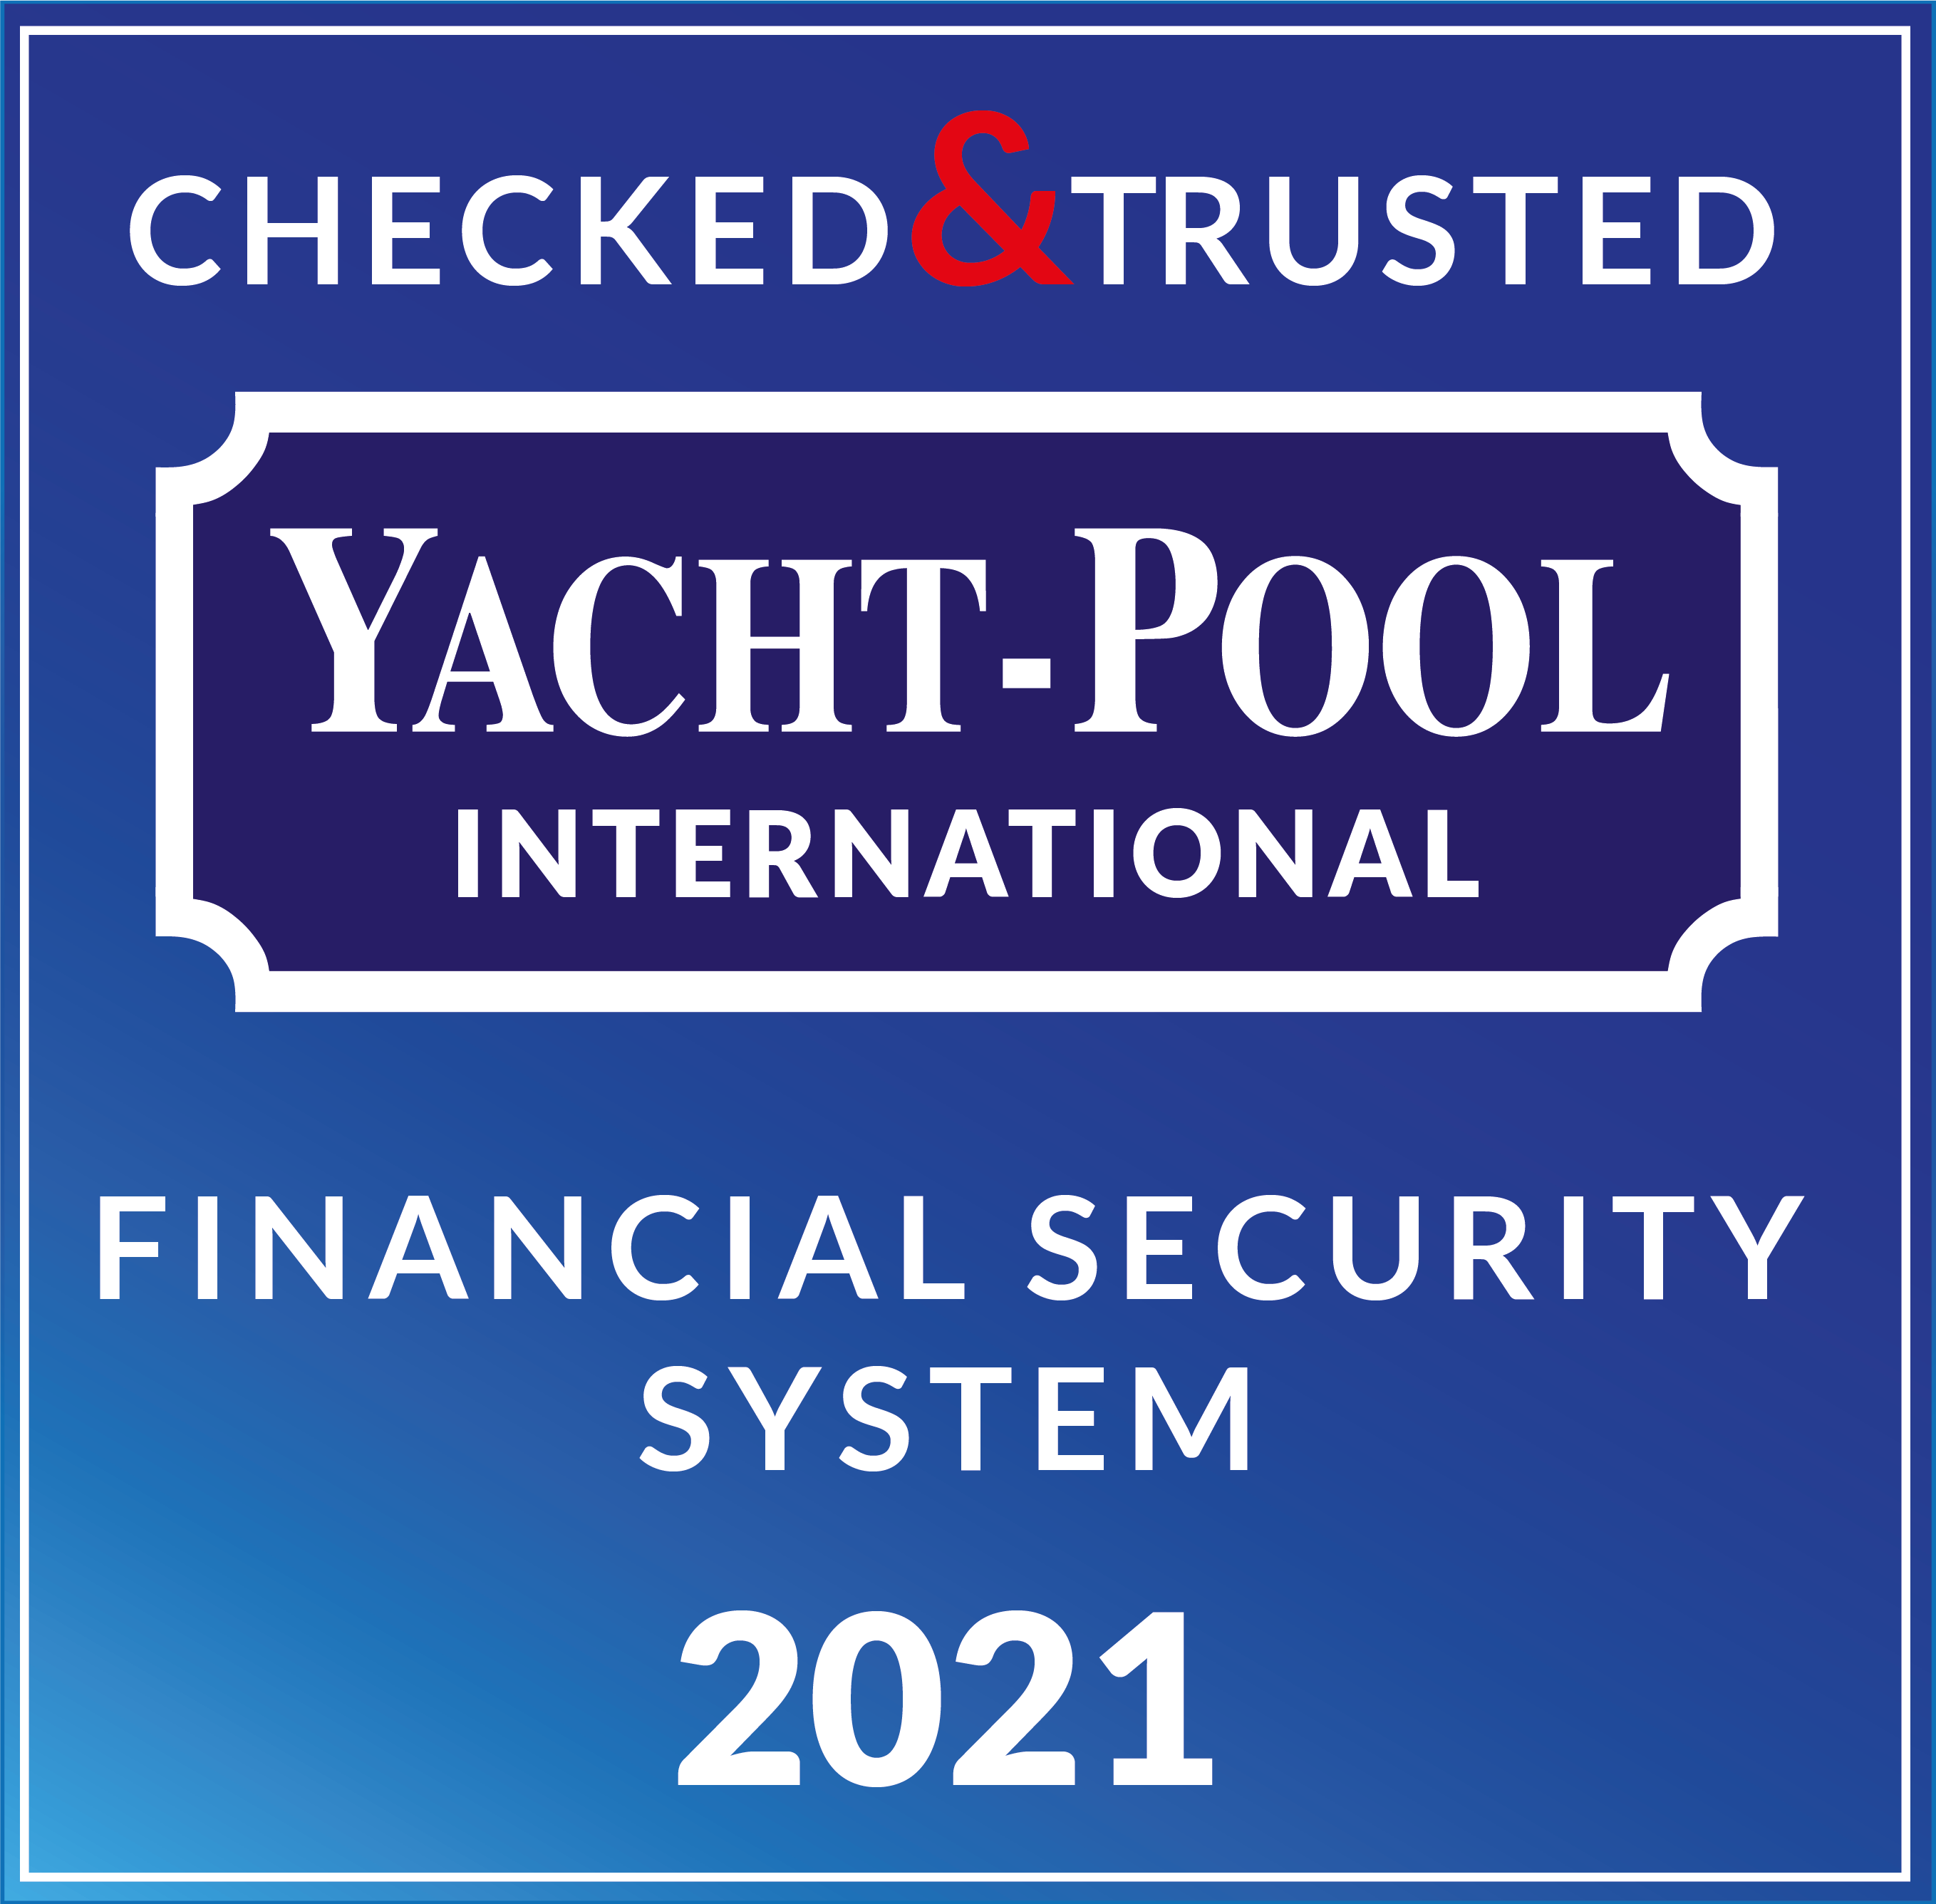 YACHT POOL financial guarantee 2019 20181022dp 2019